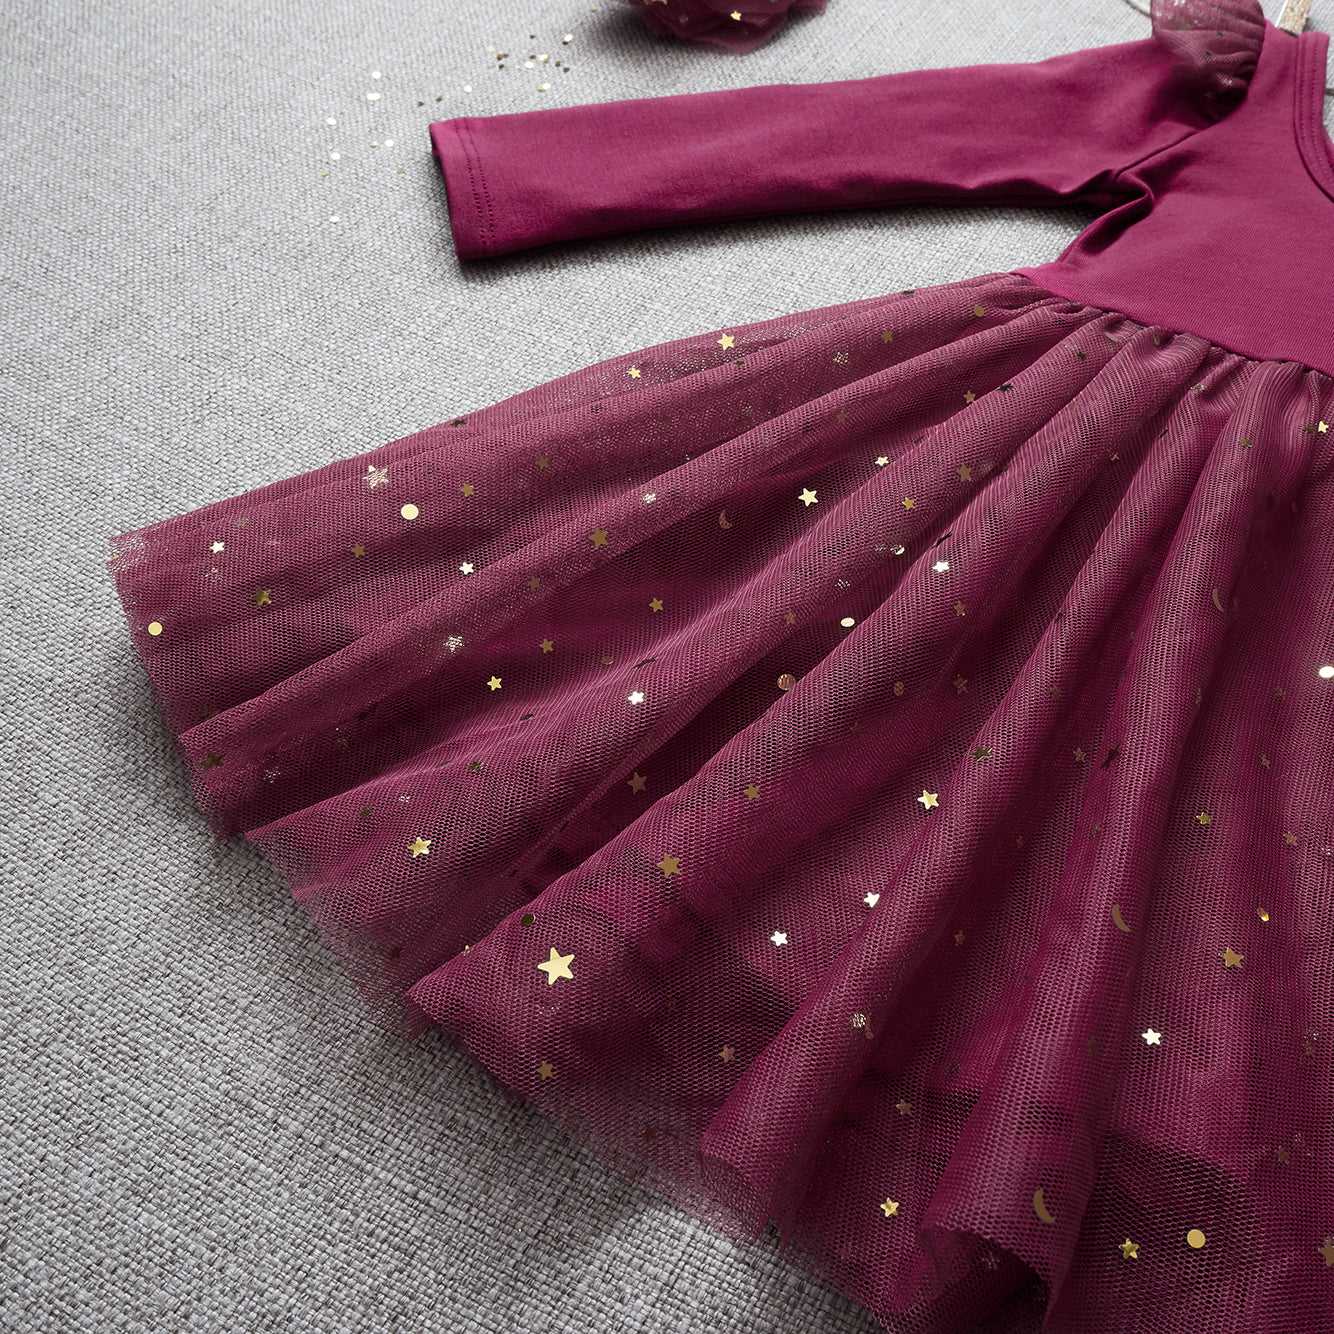 Ballerina Dress - Raspberry Jam (FINAL SALE - Size 6/9m & 18/24m Only)